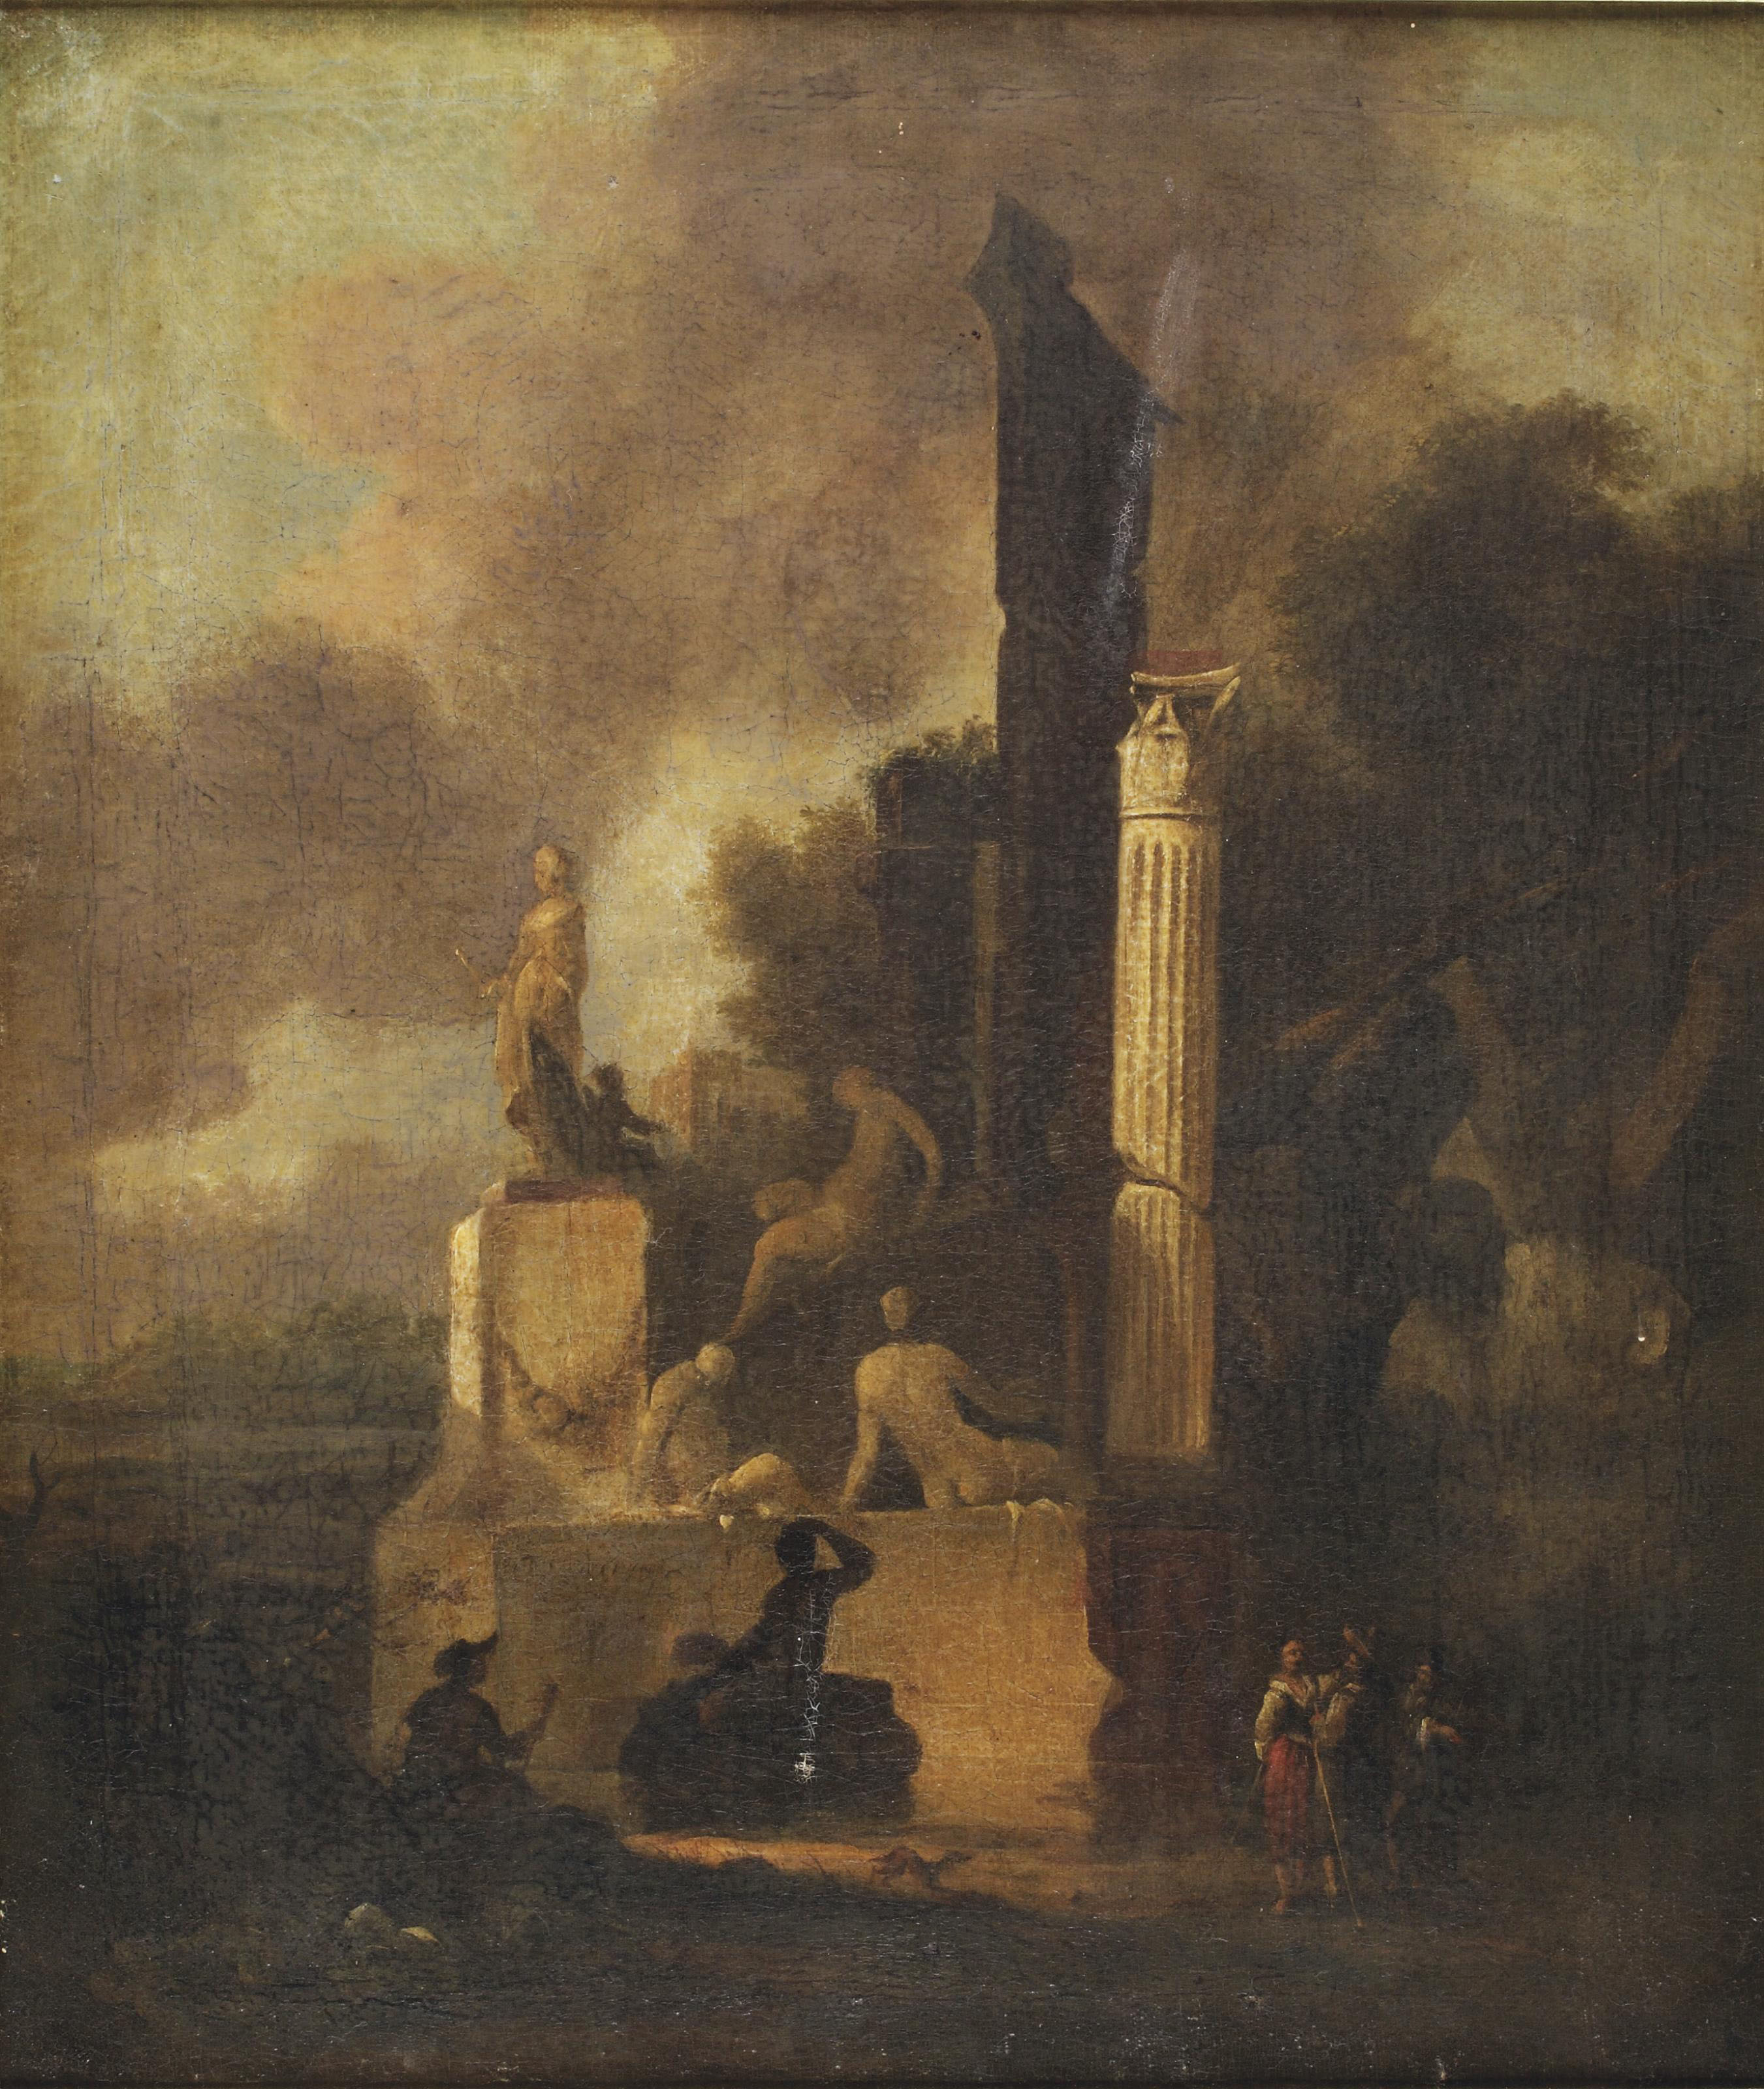 An Italianate landscape with a marble sculpture, a Roman column and classical ruins, an artist drawing and figures conversing in the foreground